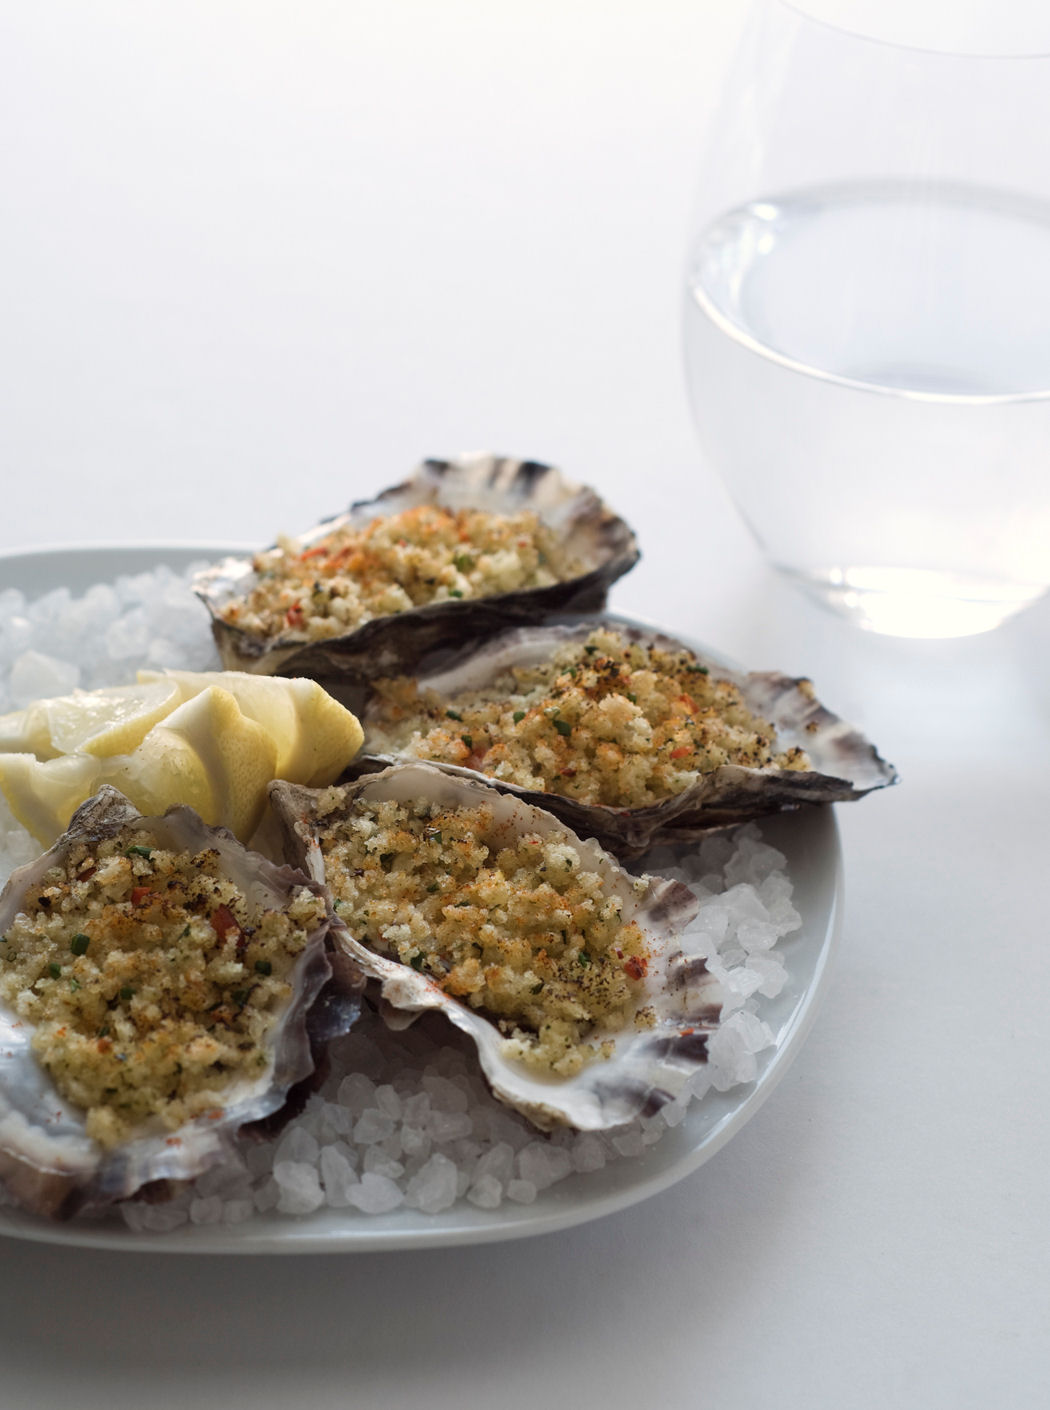 Oysters Baked with Spicy Garlic Bread Crumbs